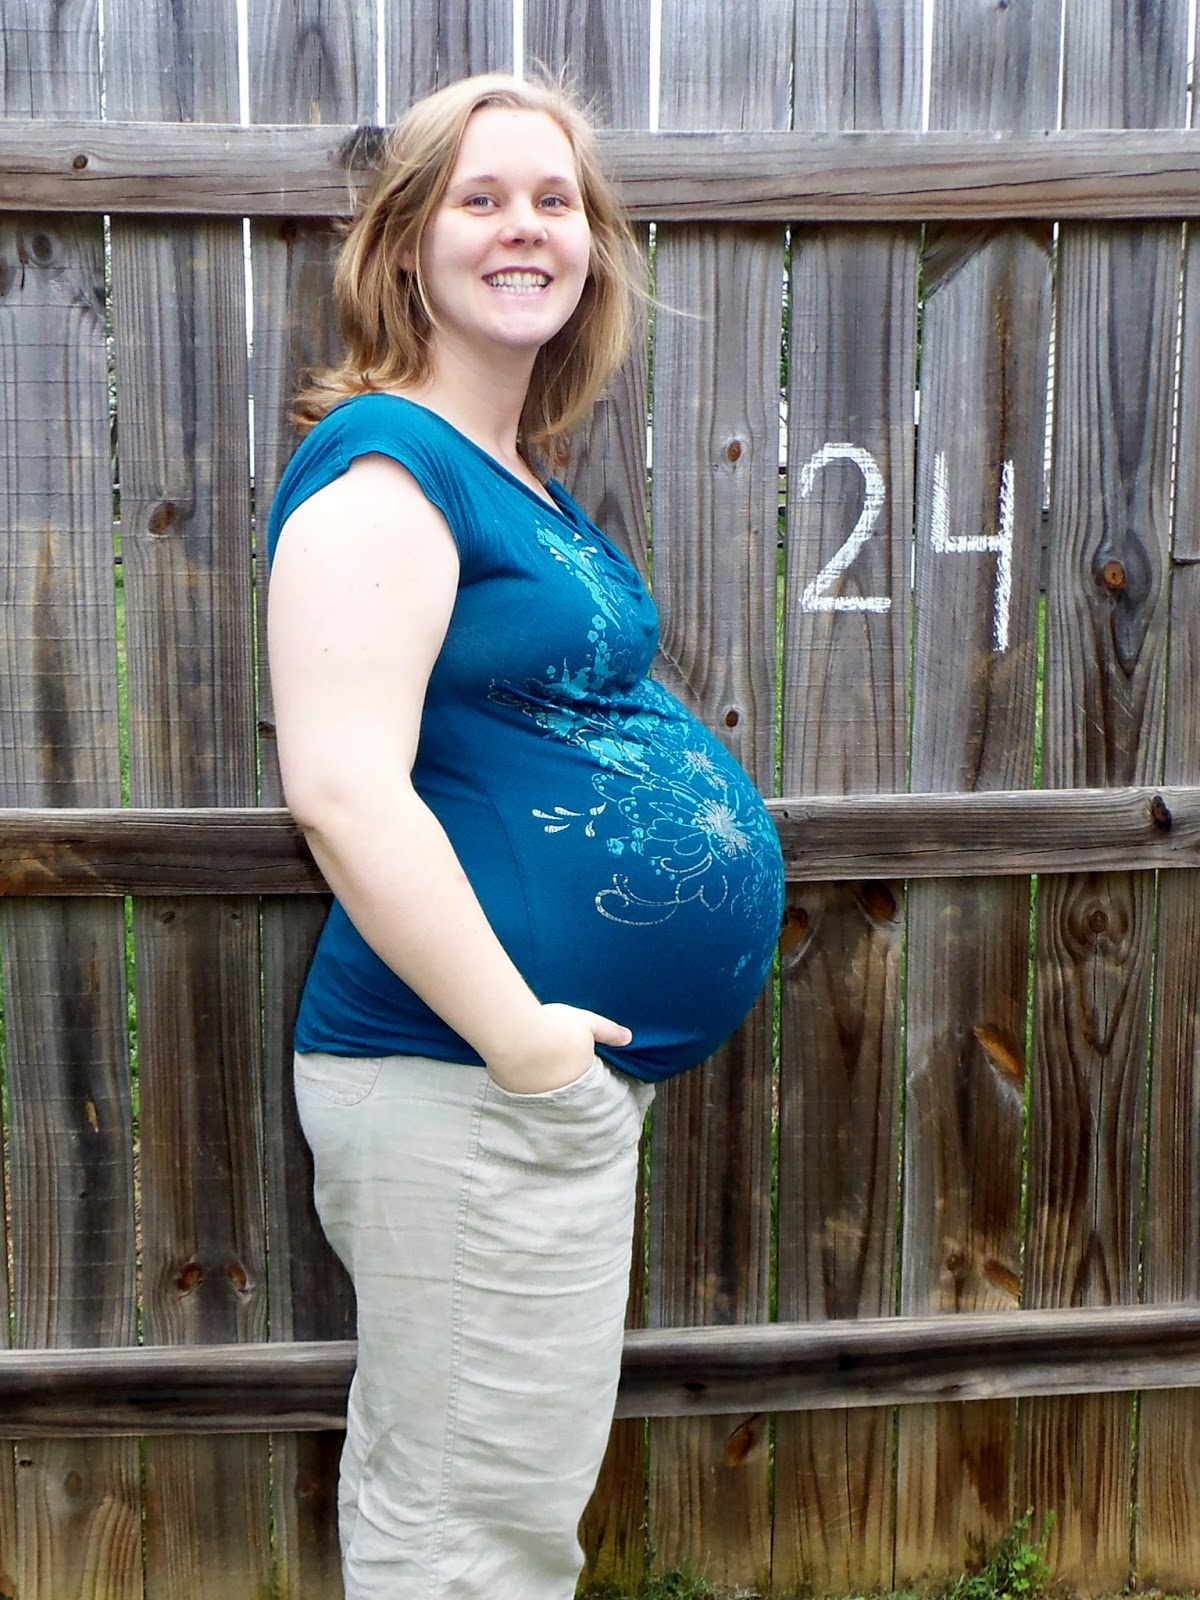 the gallery for gt pregnant with quadruplets 8 months